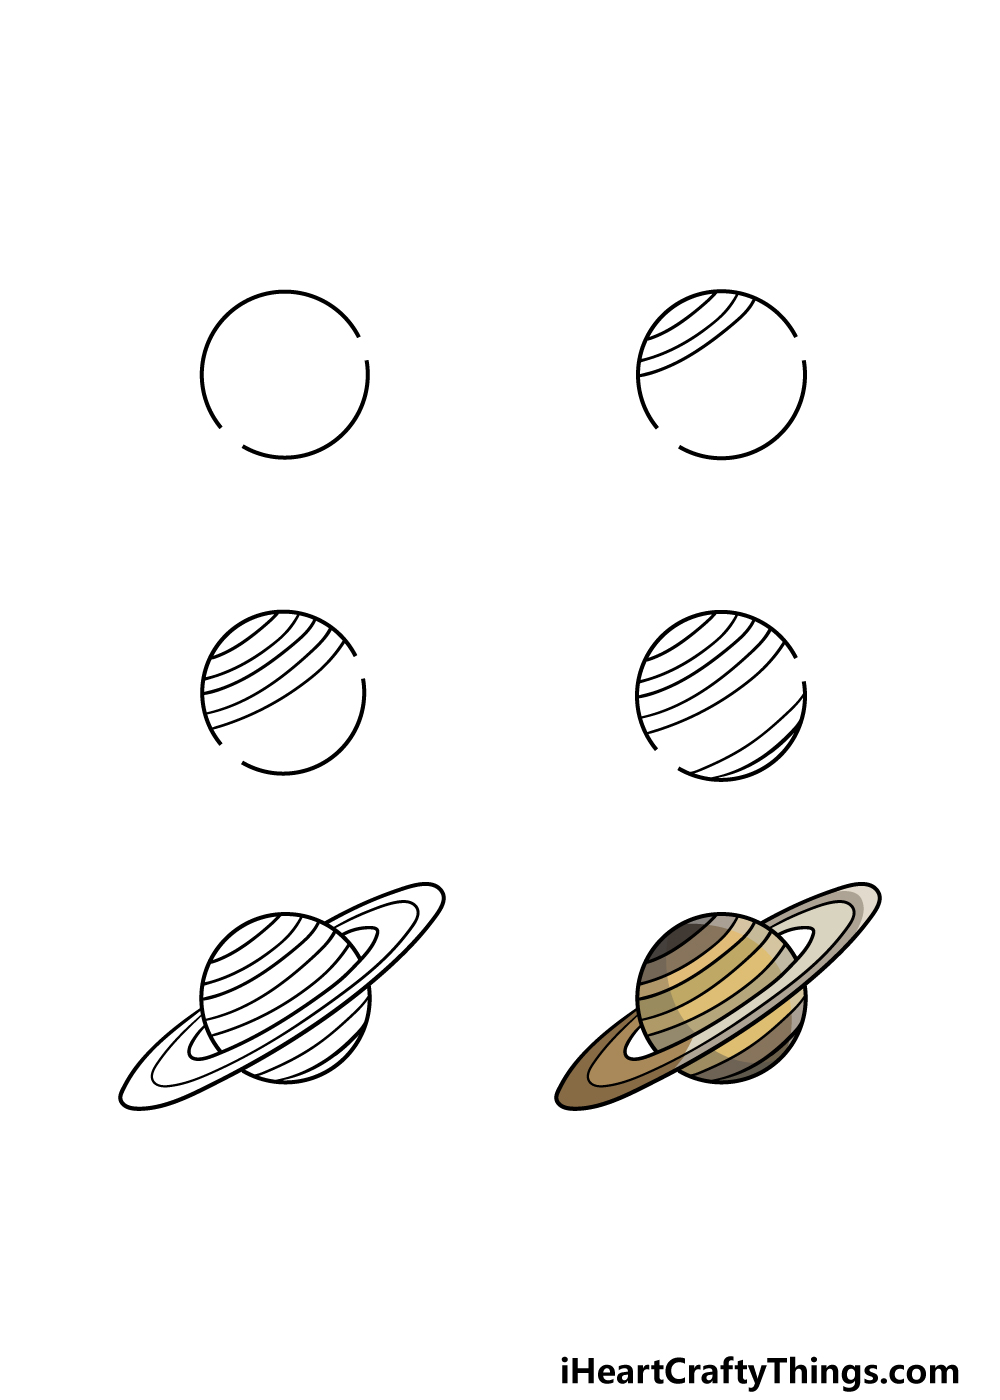 how to draw Saturn in 6 steps